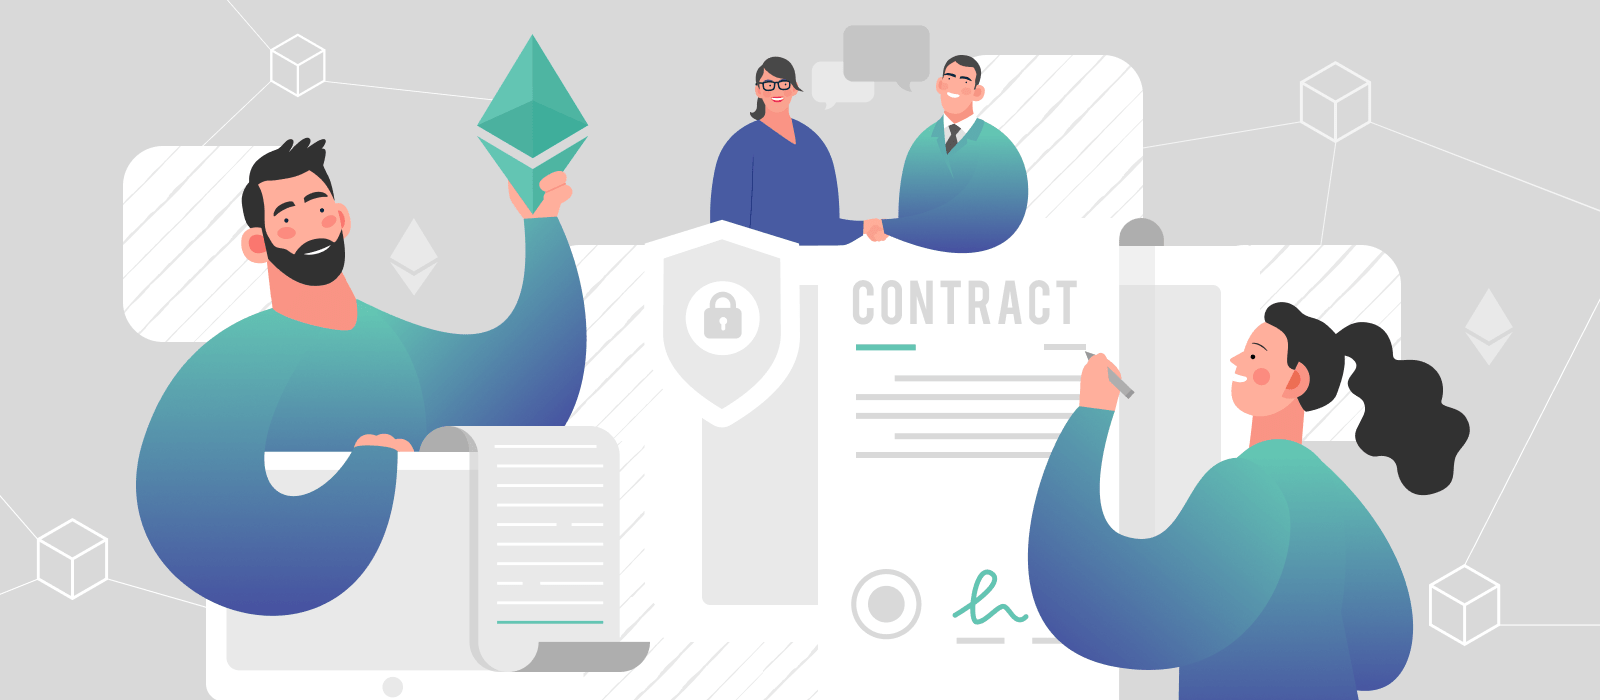 People signing a document based on a smart contract